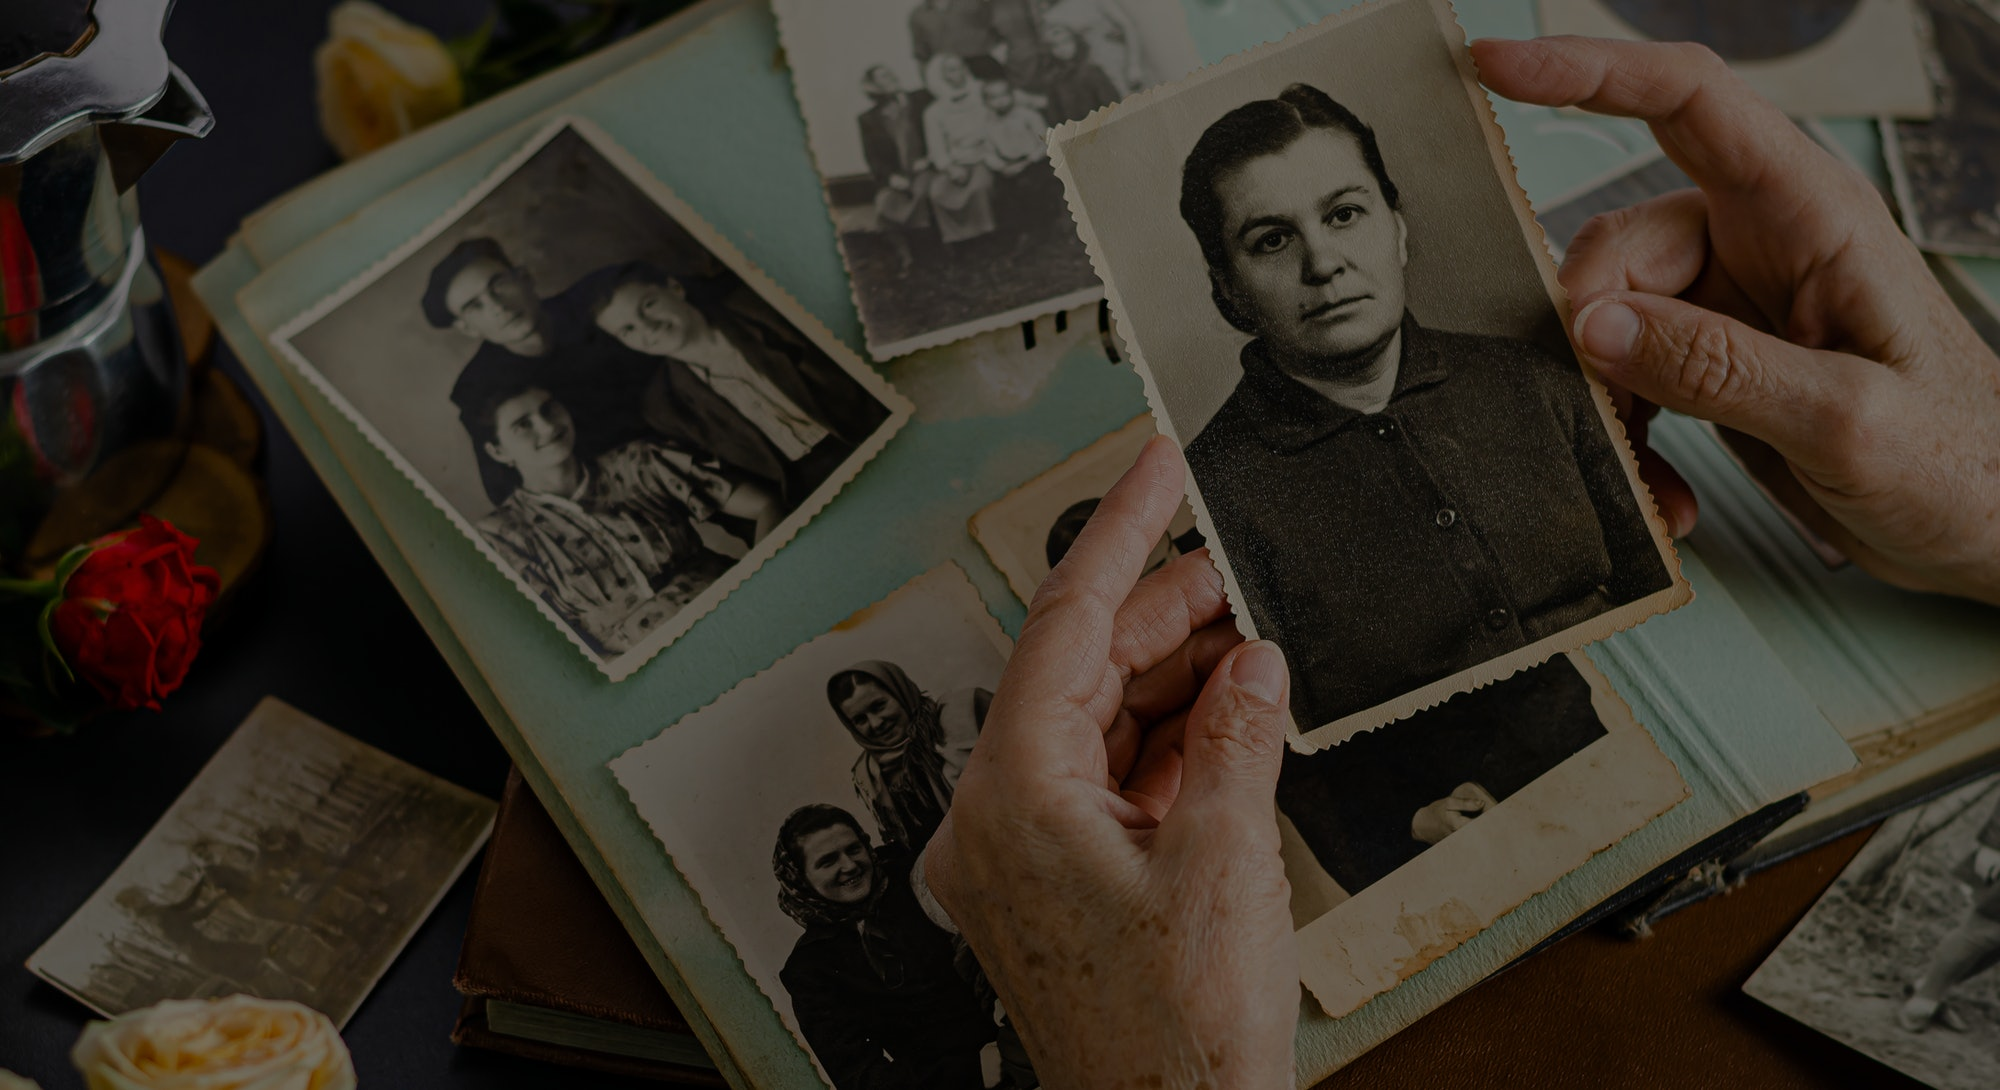 Old photos in a photo album. Picture backup iCloud photos archive.